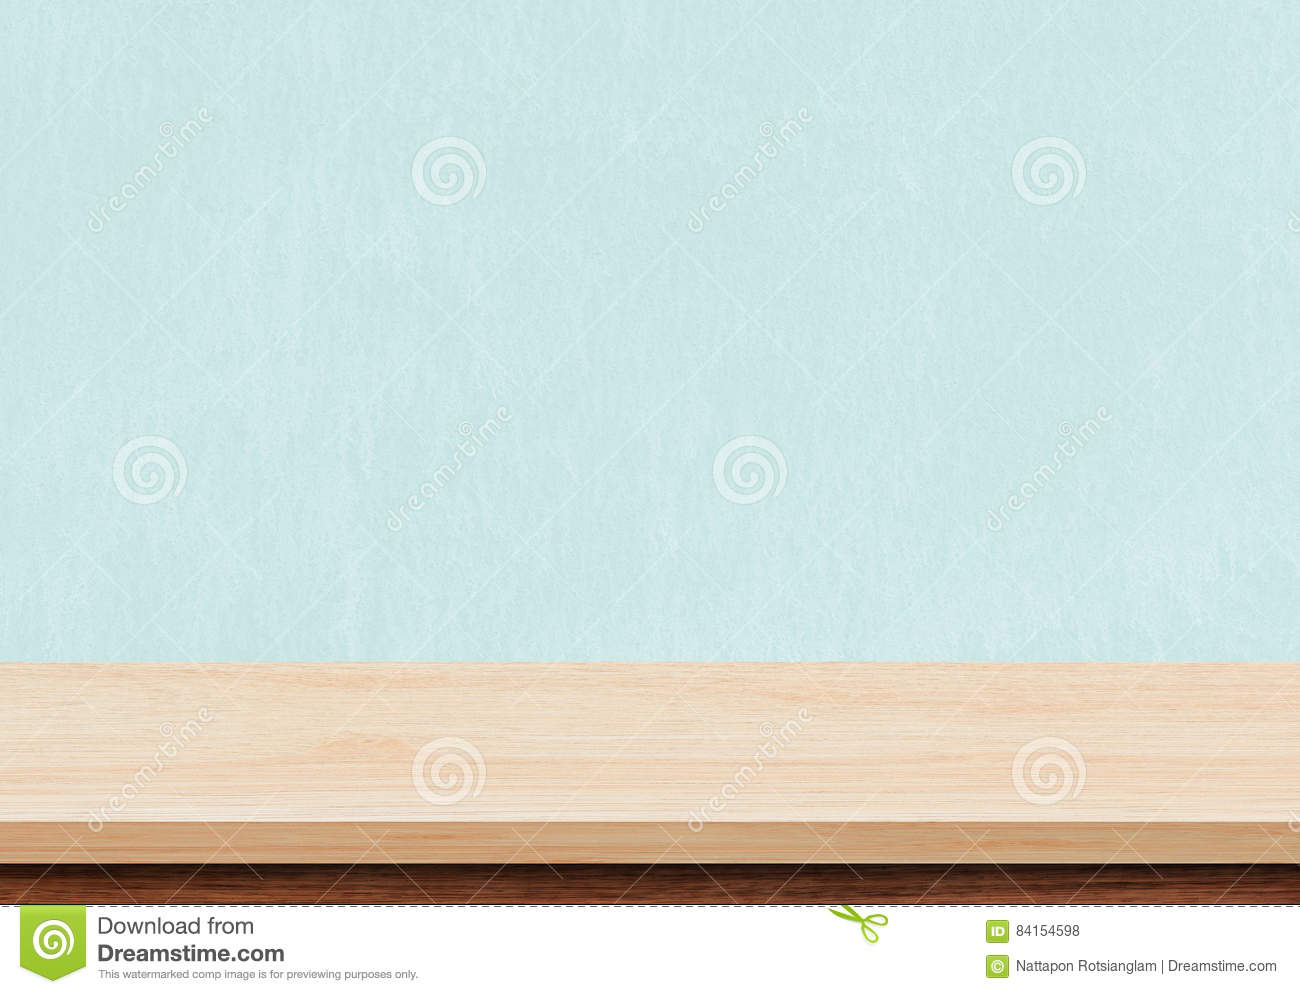 Empty brown wood table top on blue concrete background